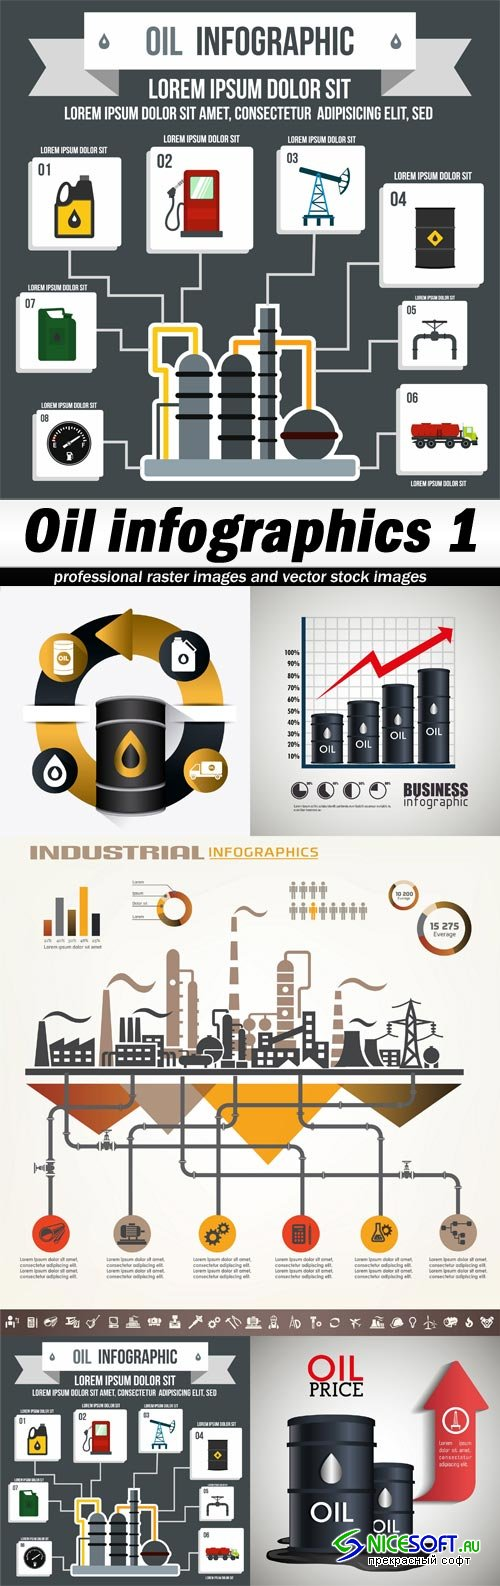 Oil infographics 1-5xEPS